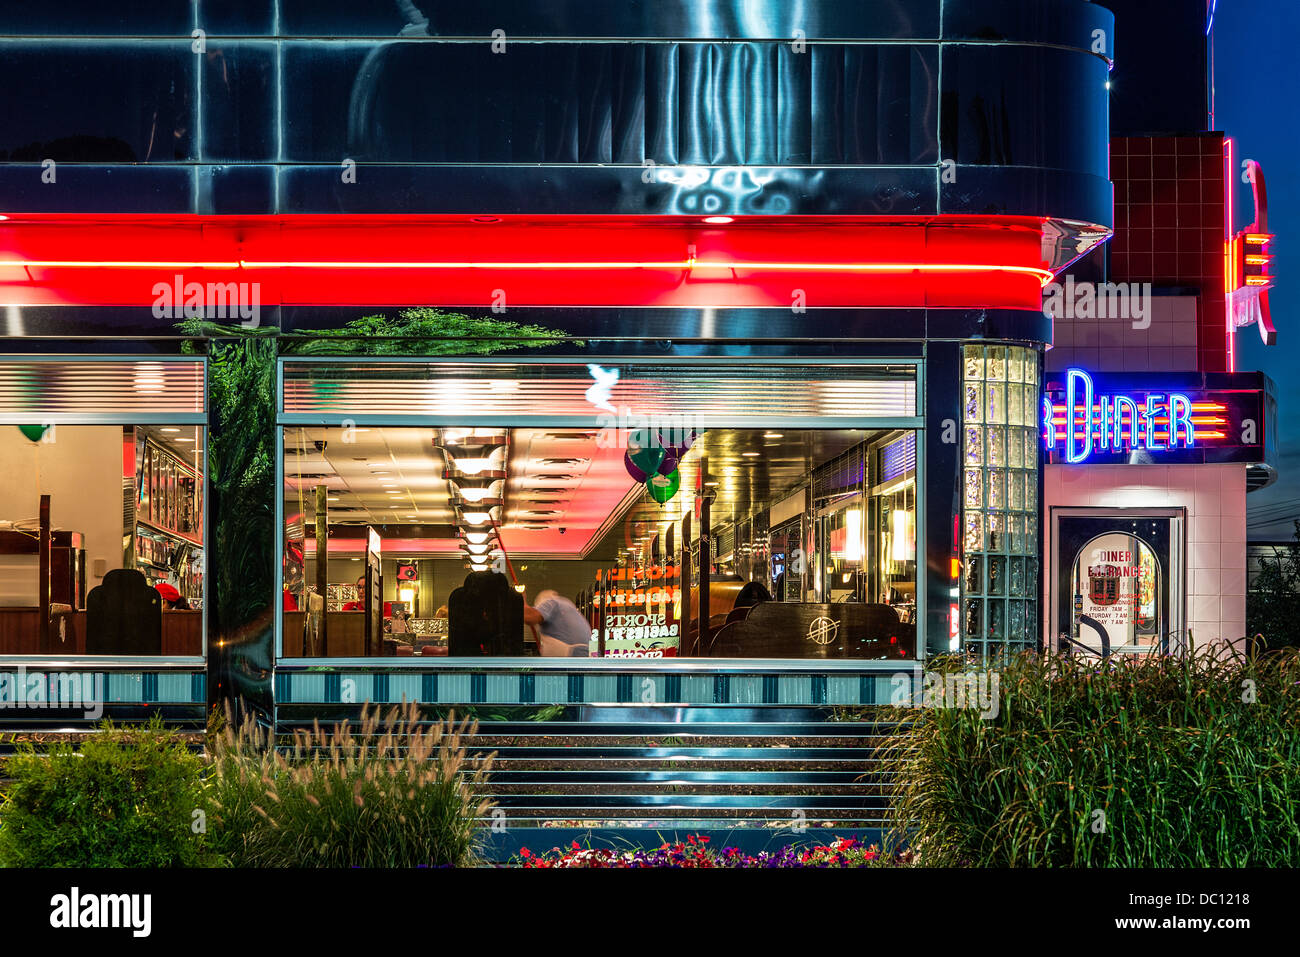 Silver Diner restaurant, chain, Cherry Hill, New Jersey, USA - Stock Image